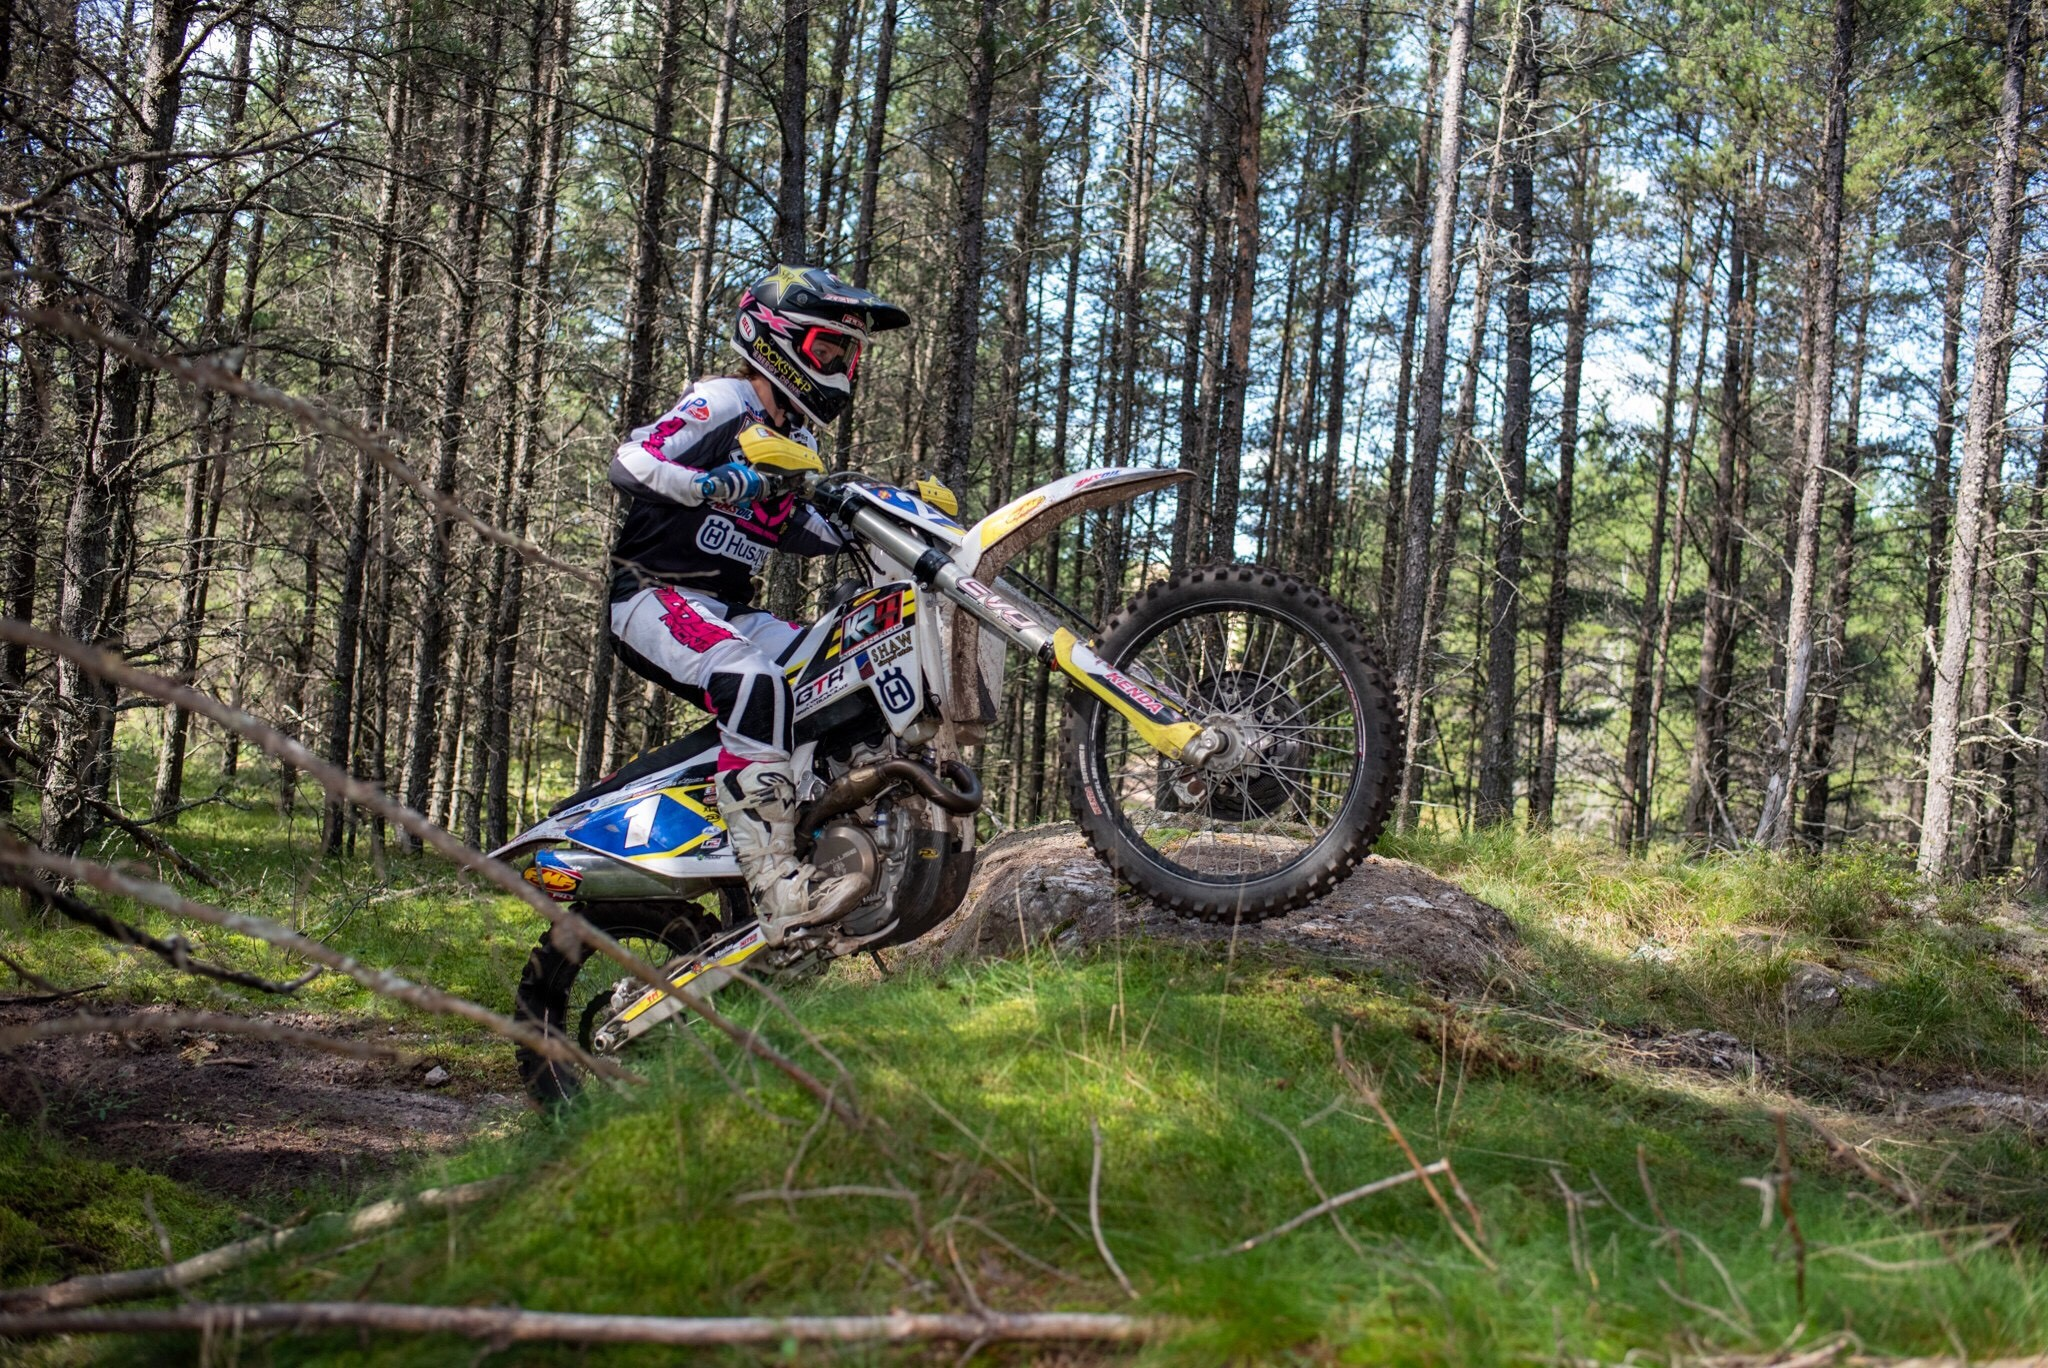 Tayla Jones battled the weekend with Australia rider Mackenzie Tricker and ended up taking 2nd place in the Women's Elite class.